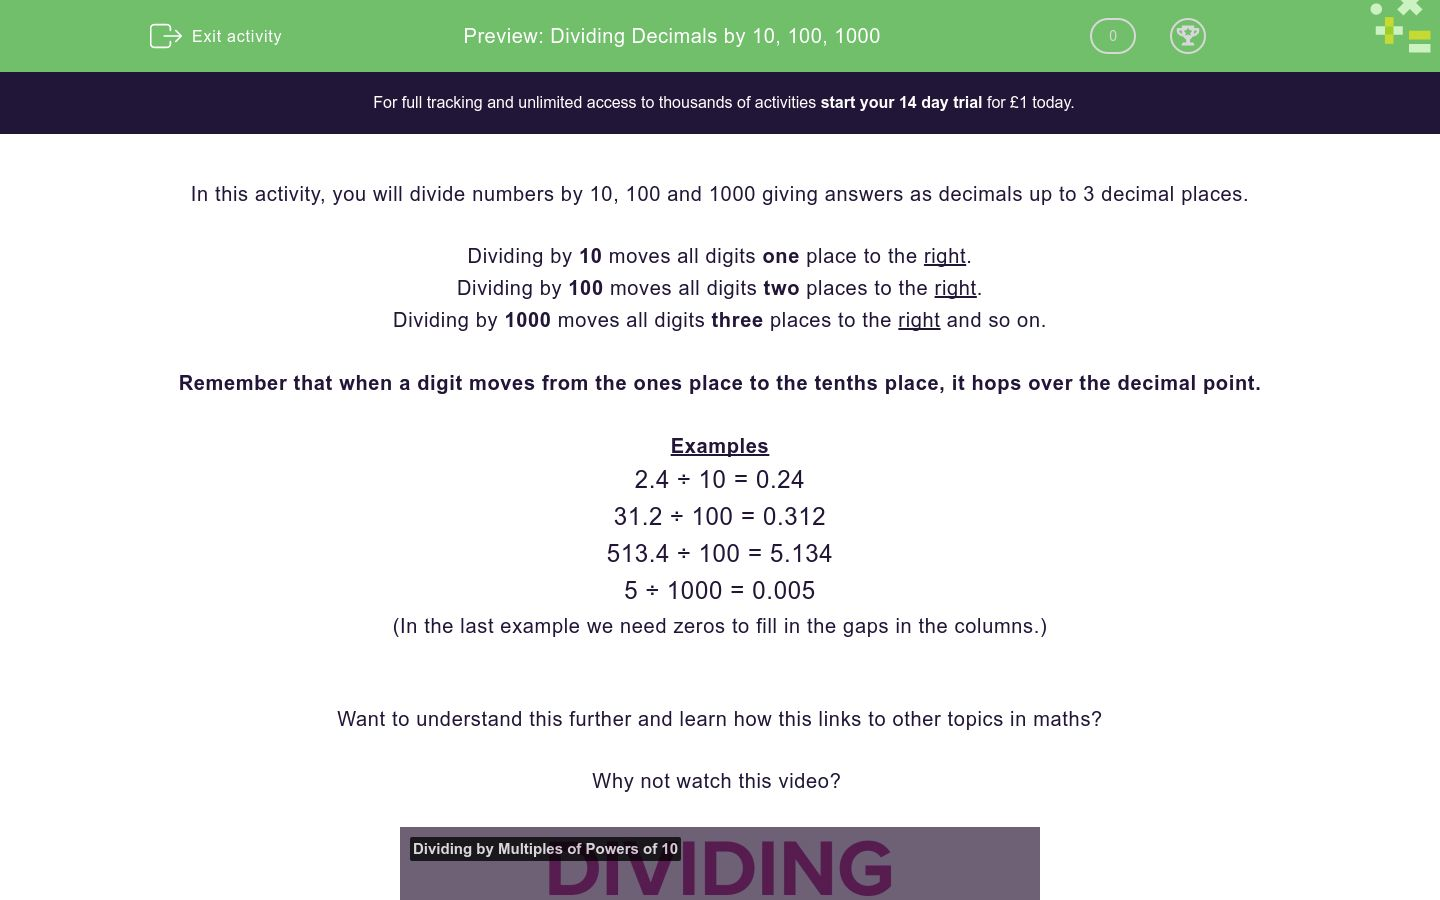 'Dividing Decimals by 10, 100, 1000' worksheet